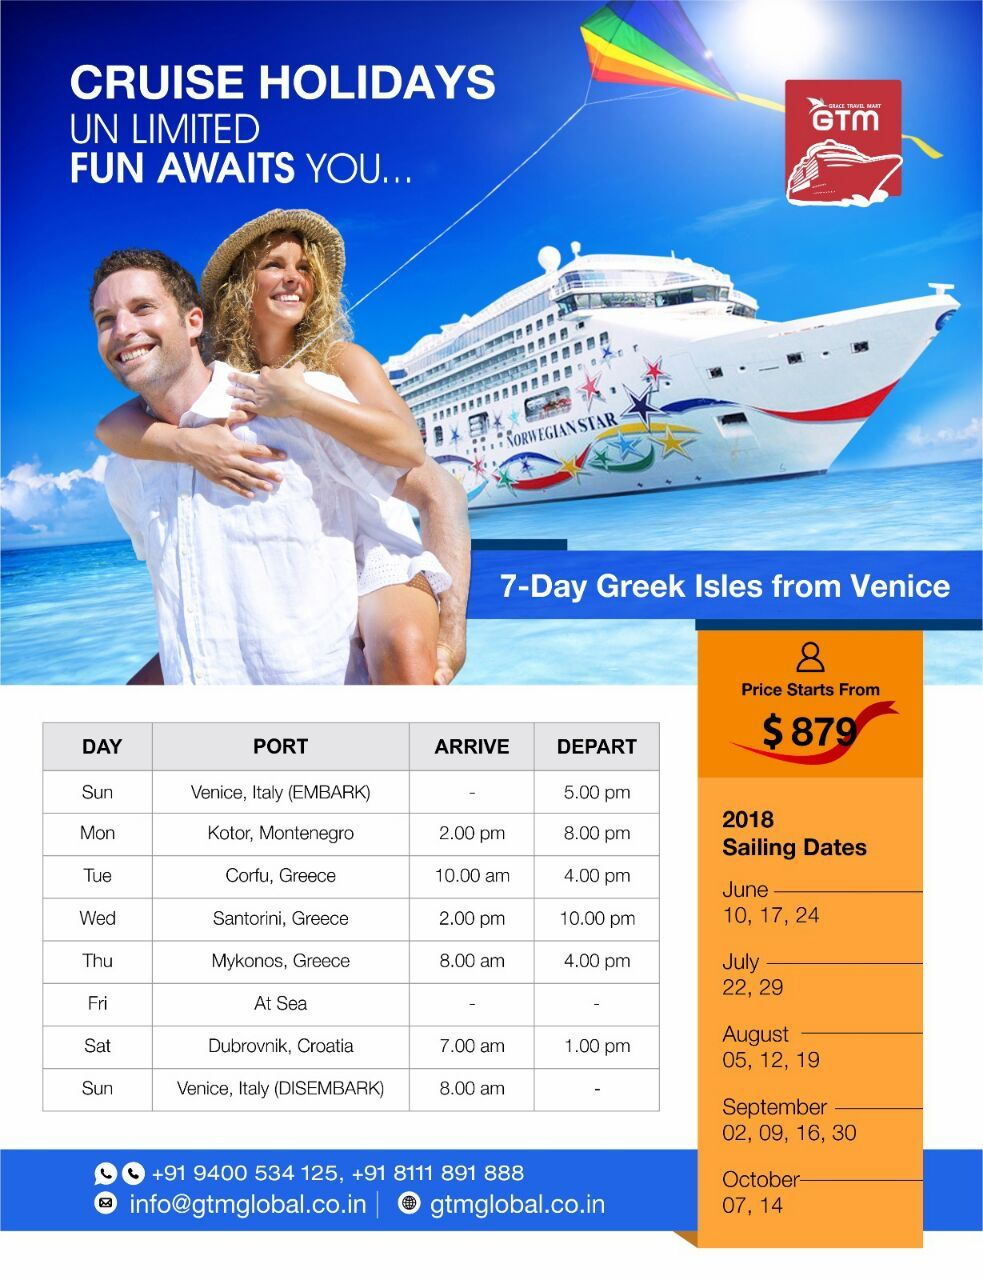 Cruise Holidays with GTM Let's Sail Global...! Kerala